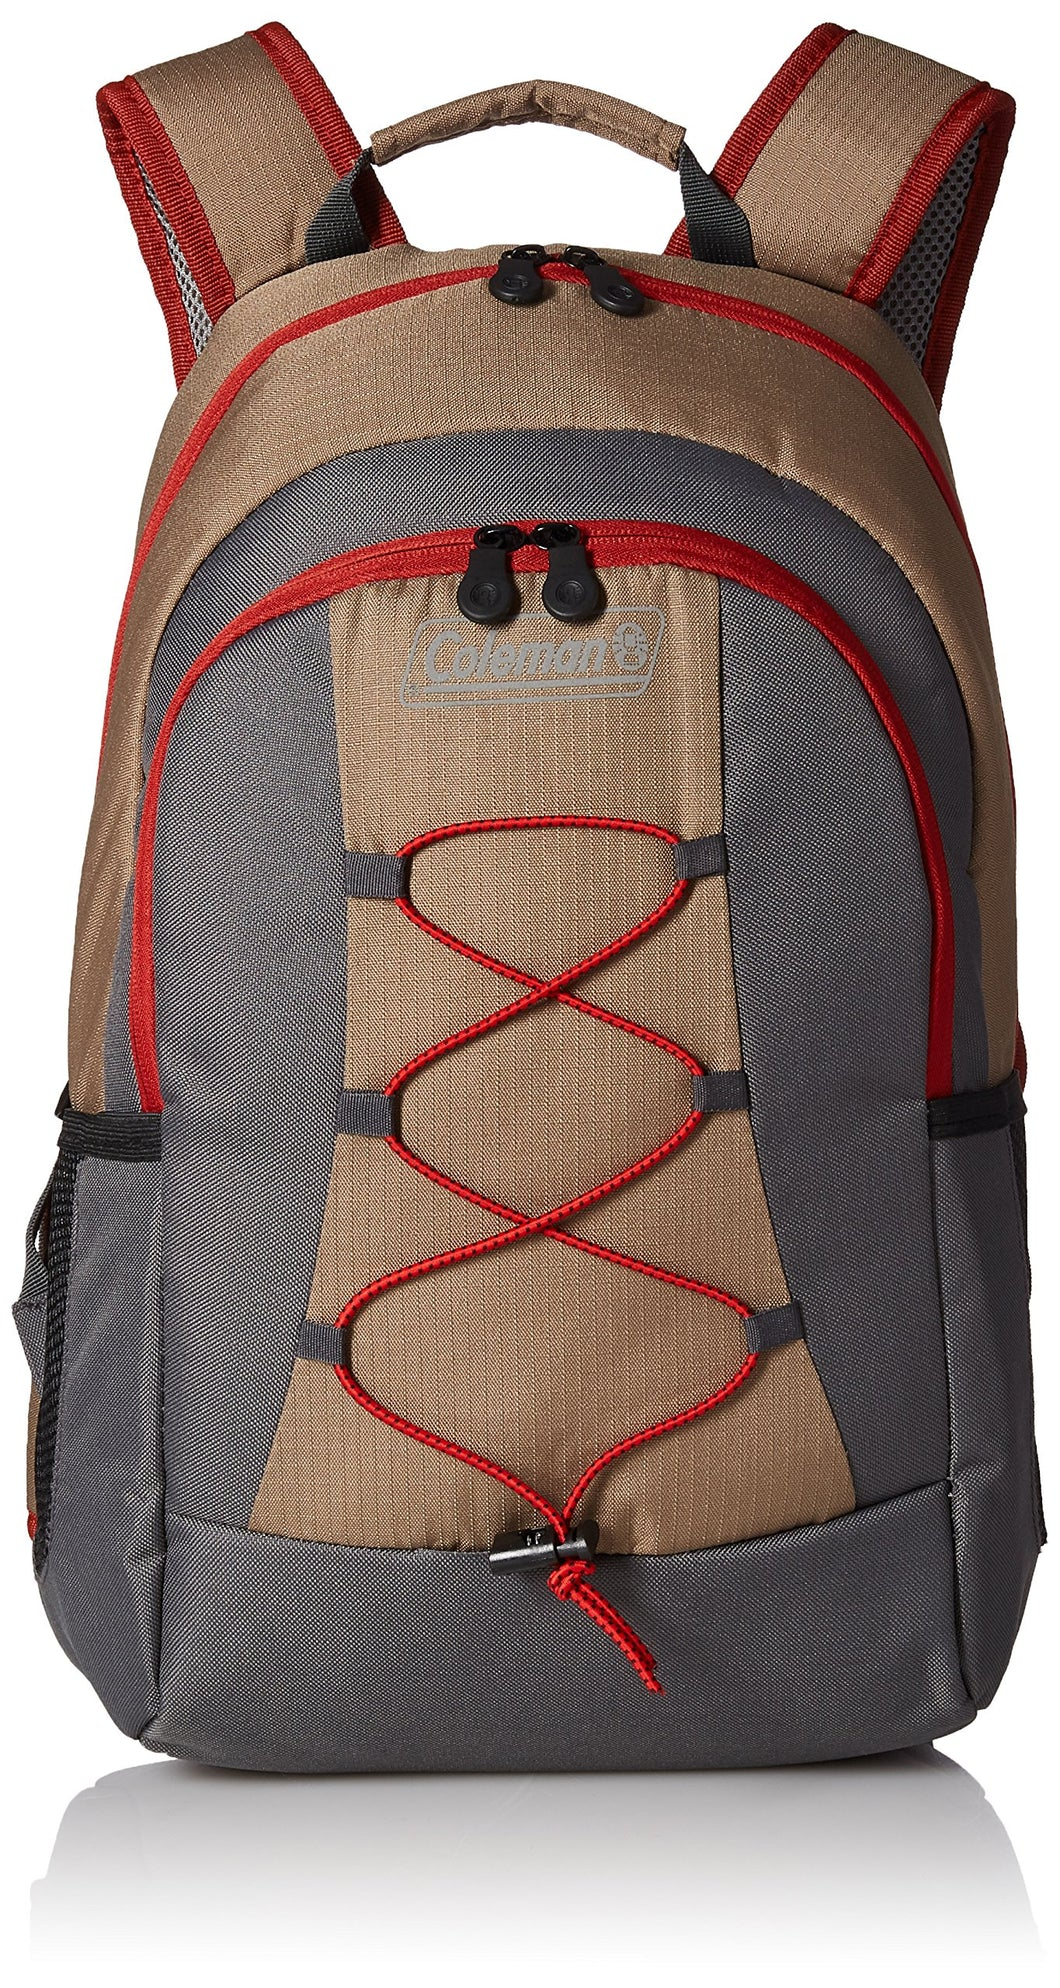 Coleman Soft Cooler Backpack | 28-Can Leak-Proof Cooler | Great for Picnics, BBQs, Camping, Tailgating & Outdoor Activities - Omigod, Dibs!™